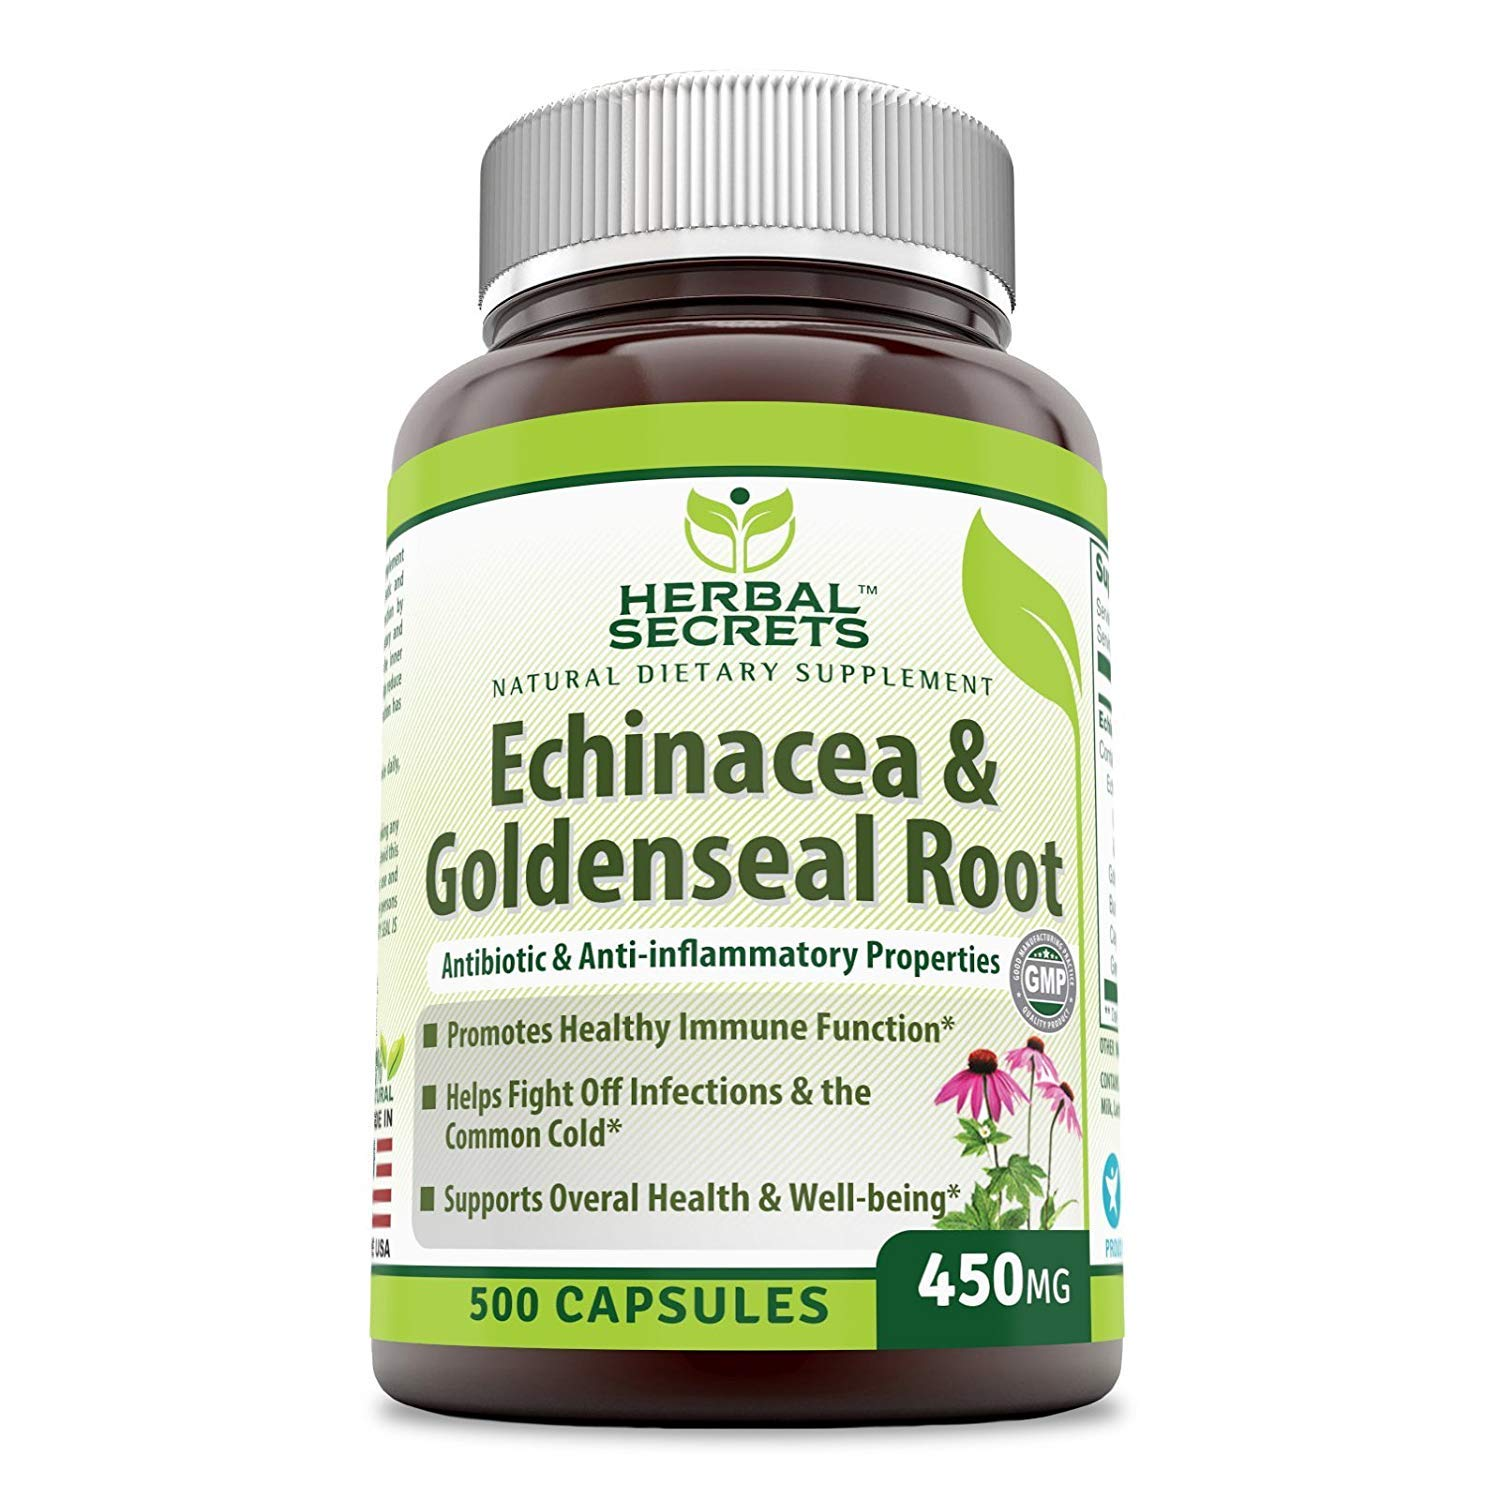 Herbal Secrets Echinacea Goldenseal Root – 450 Mg 500 Caps with Echinacea Purpurea, Goldenseal, Burdock Root Cayenne Pepper